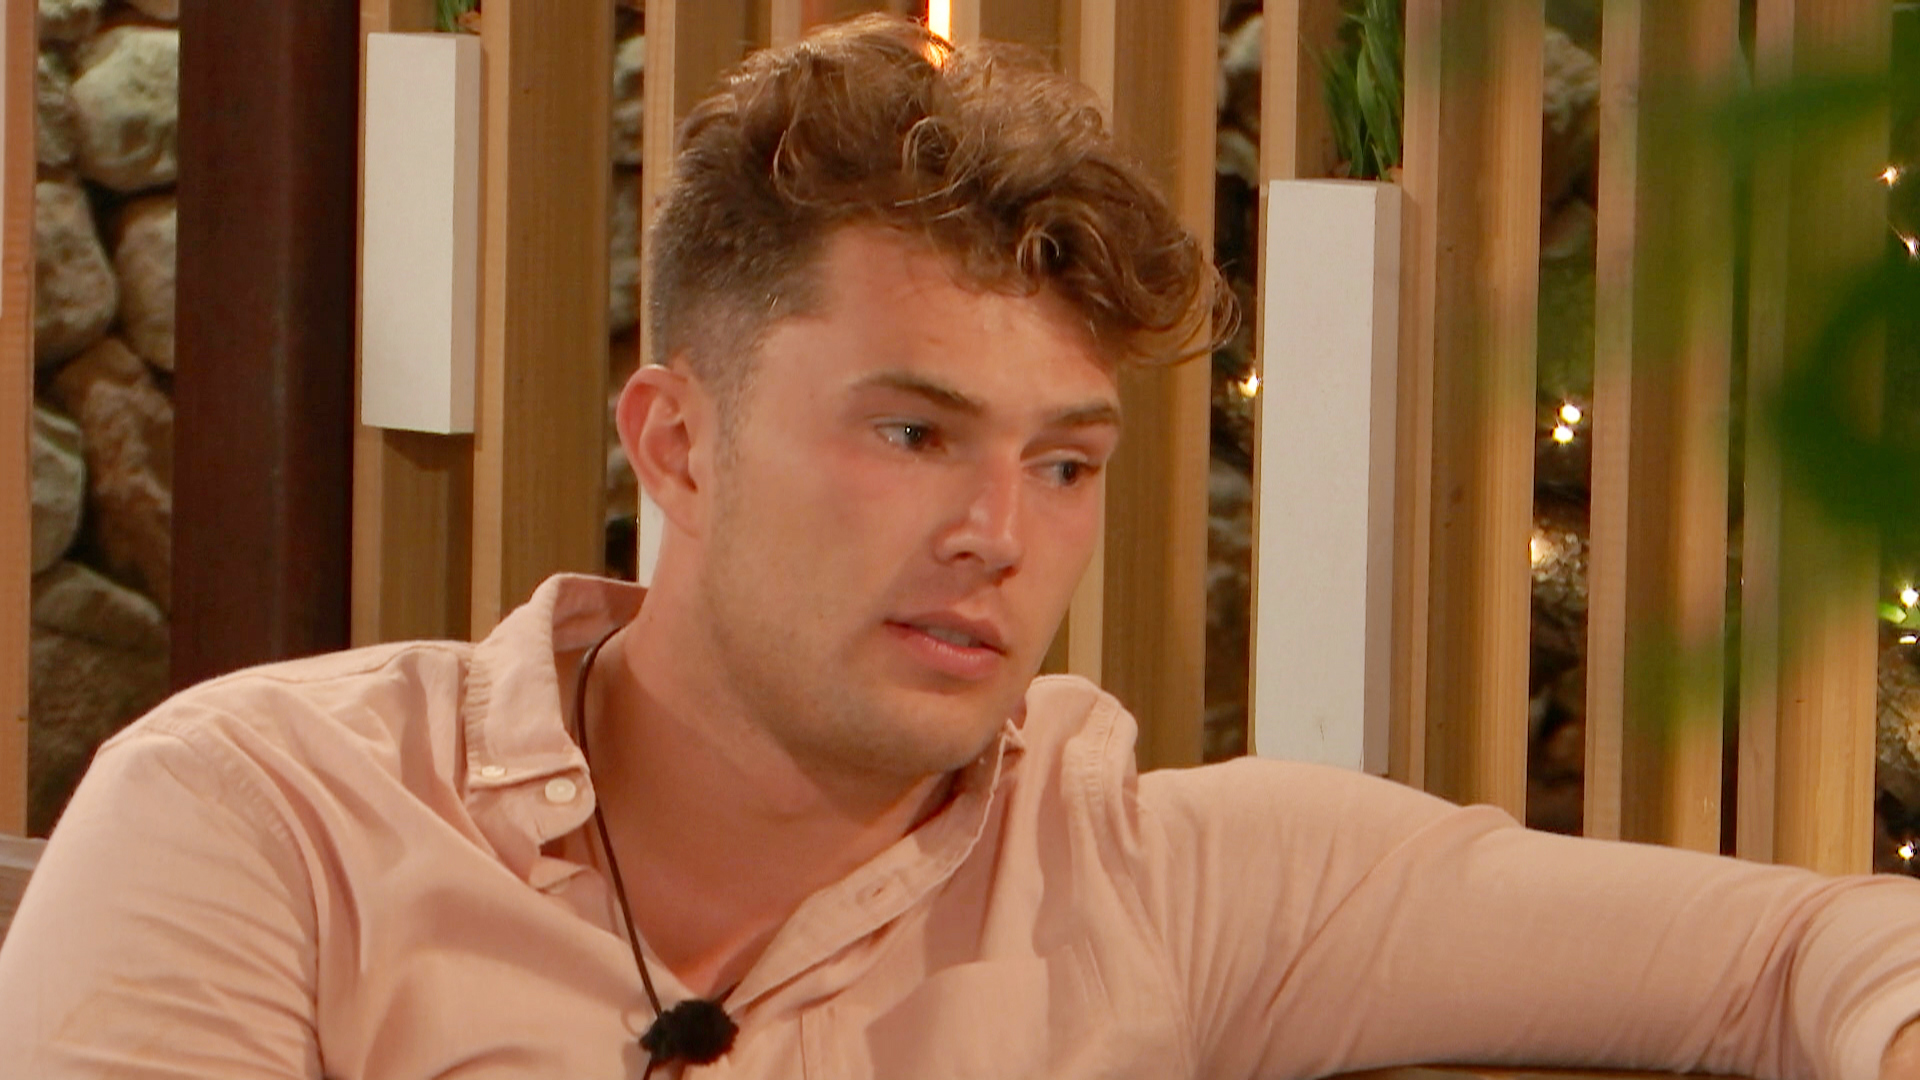 Love Island bosses slam viewers for 'body-shaming' Curtis over his weight